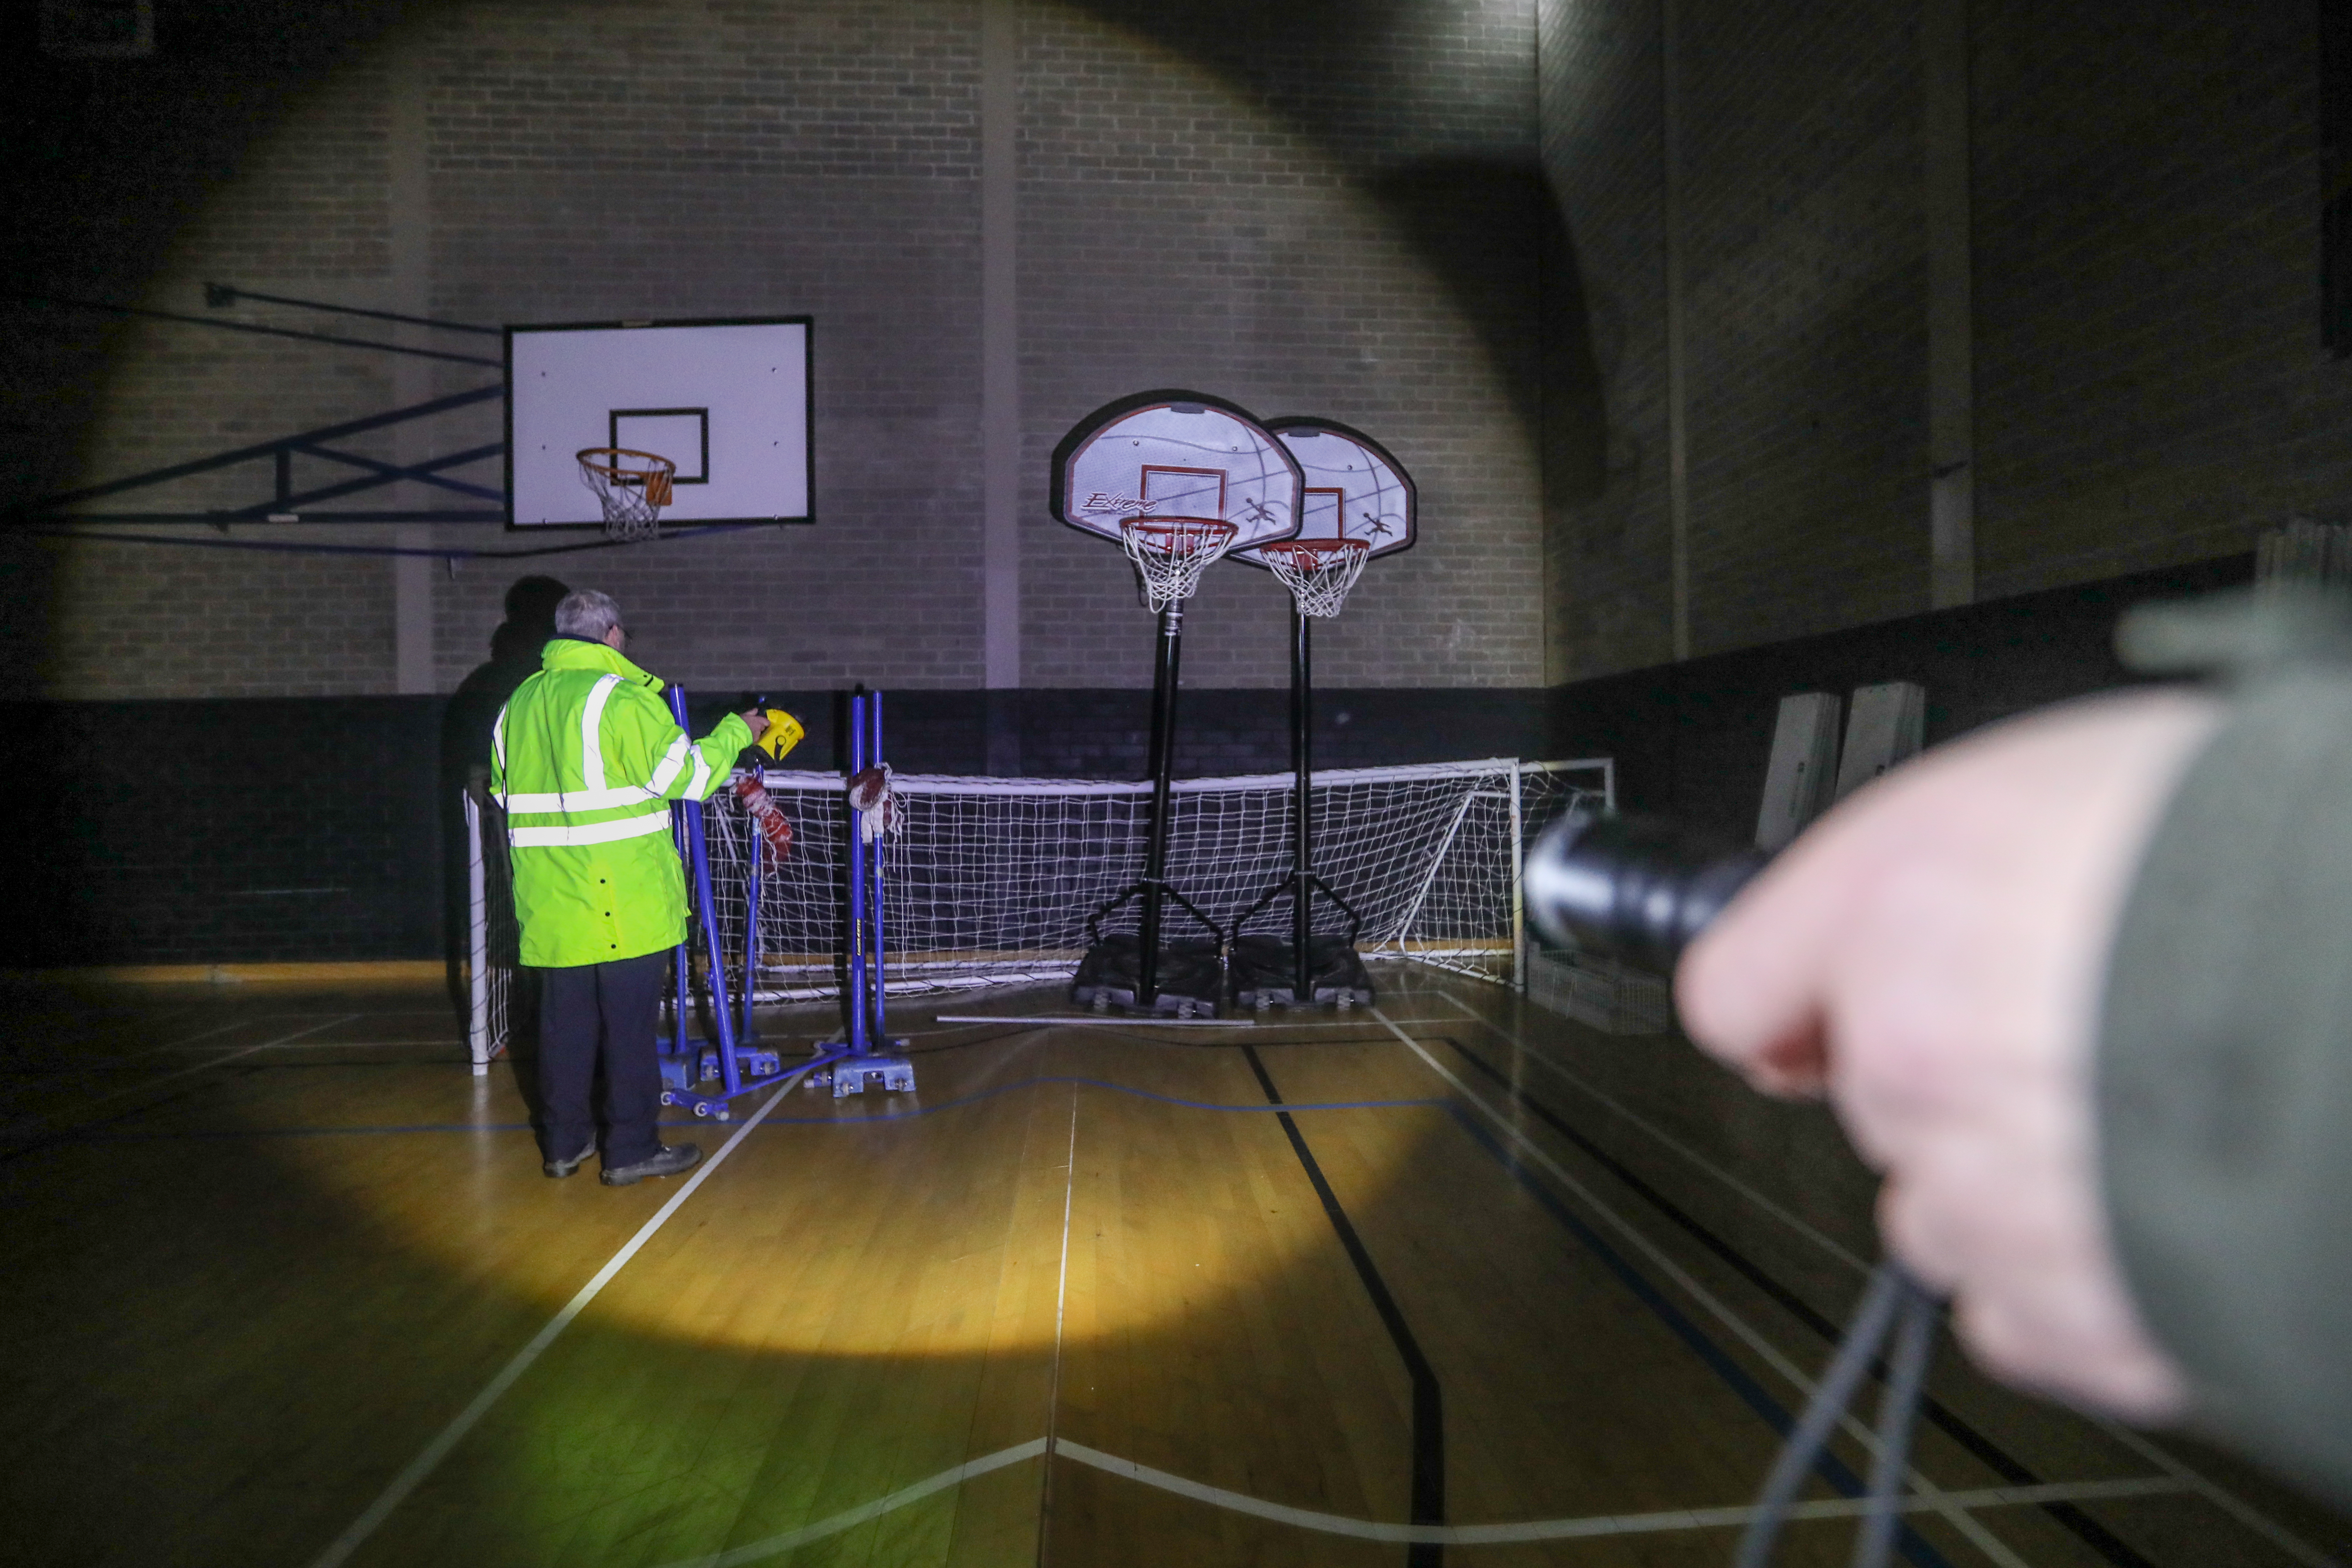 Mr Stewart and others toured the empty leisure centre on Wednesday